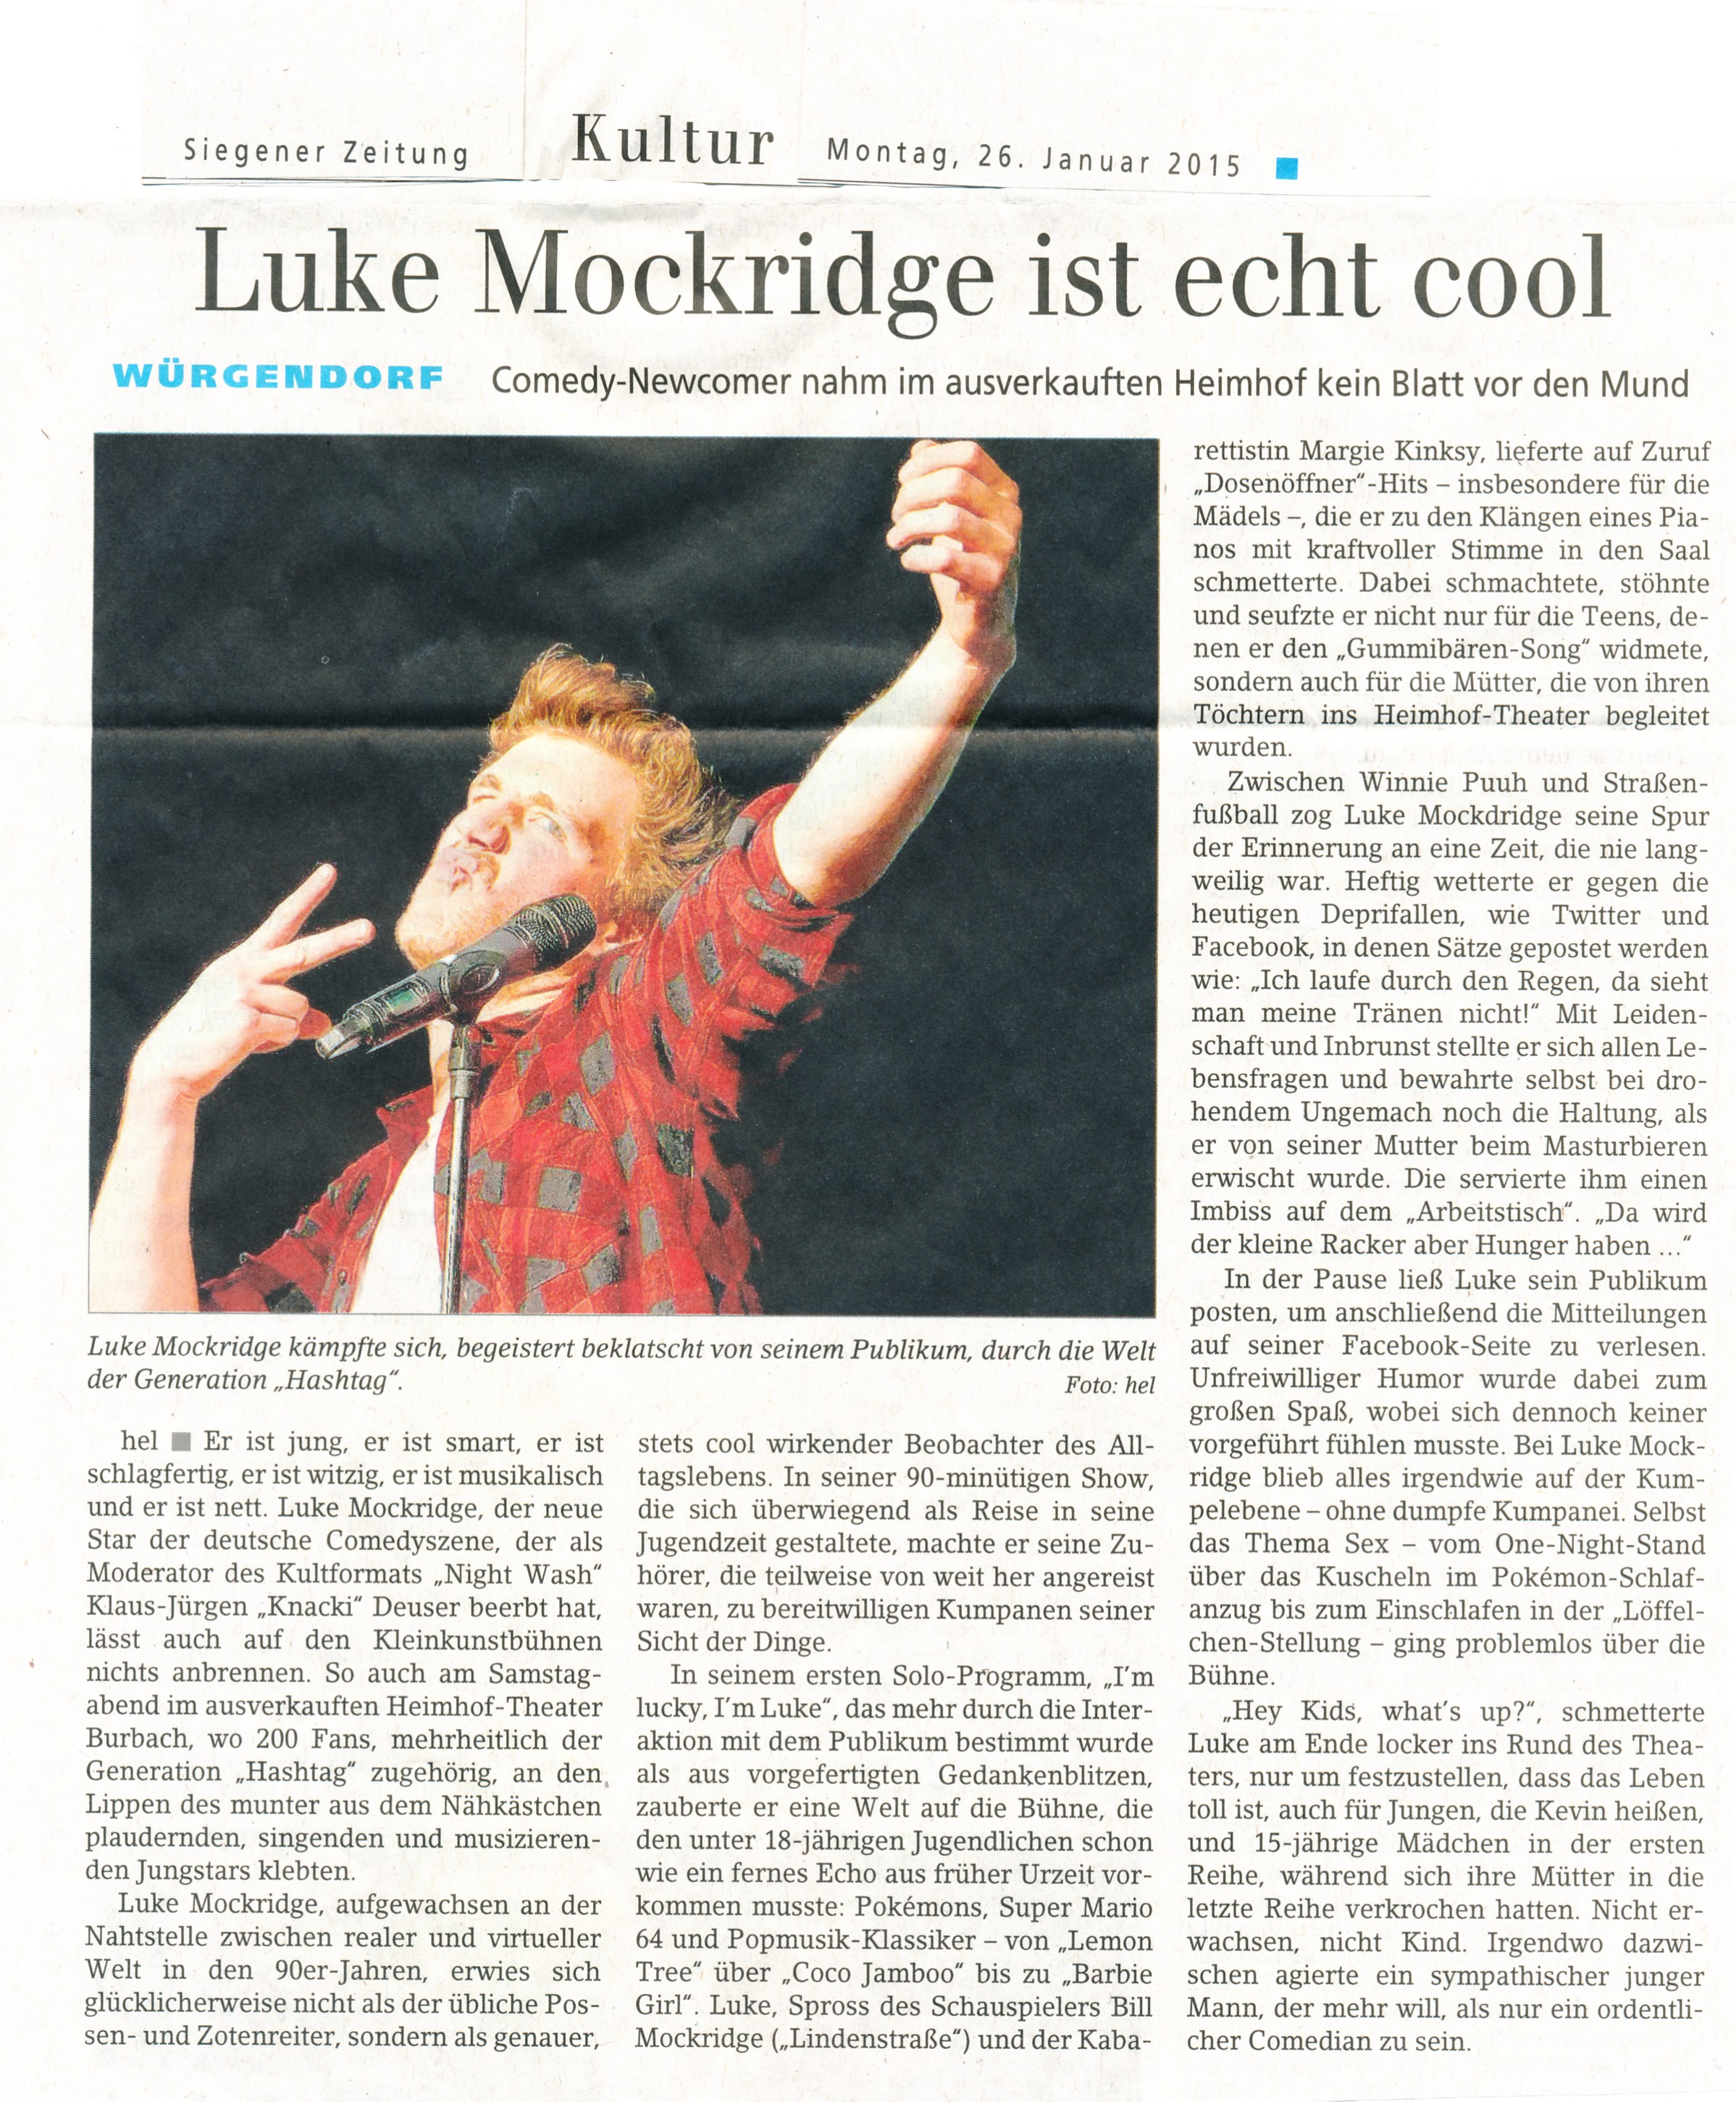 2015-01-24 Luke Mockridge